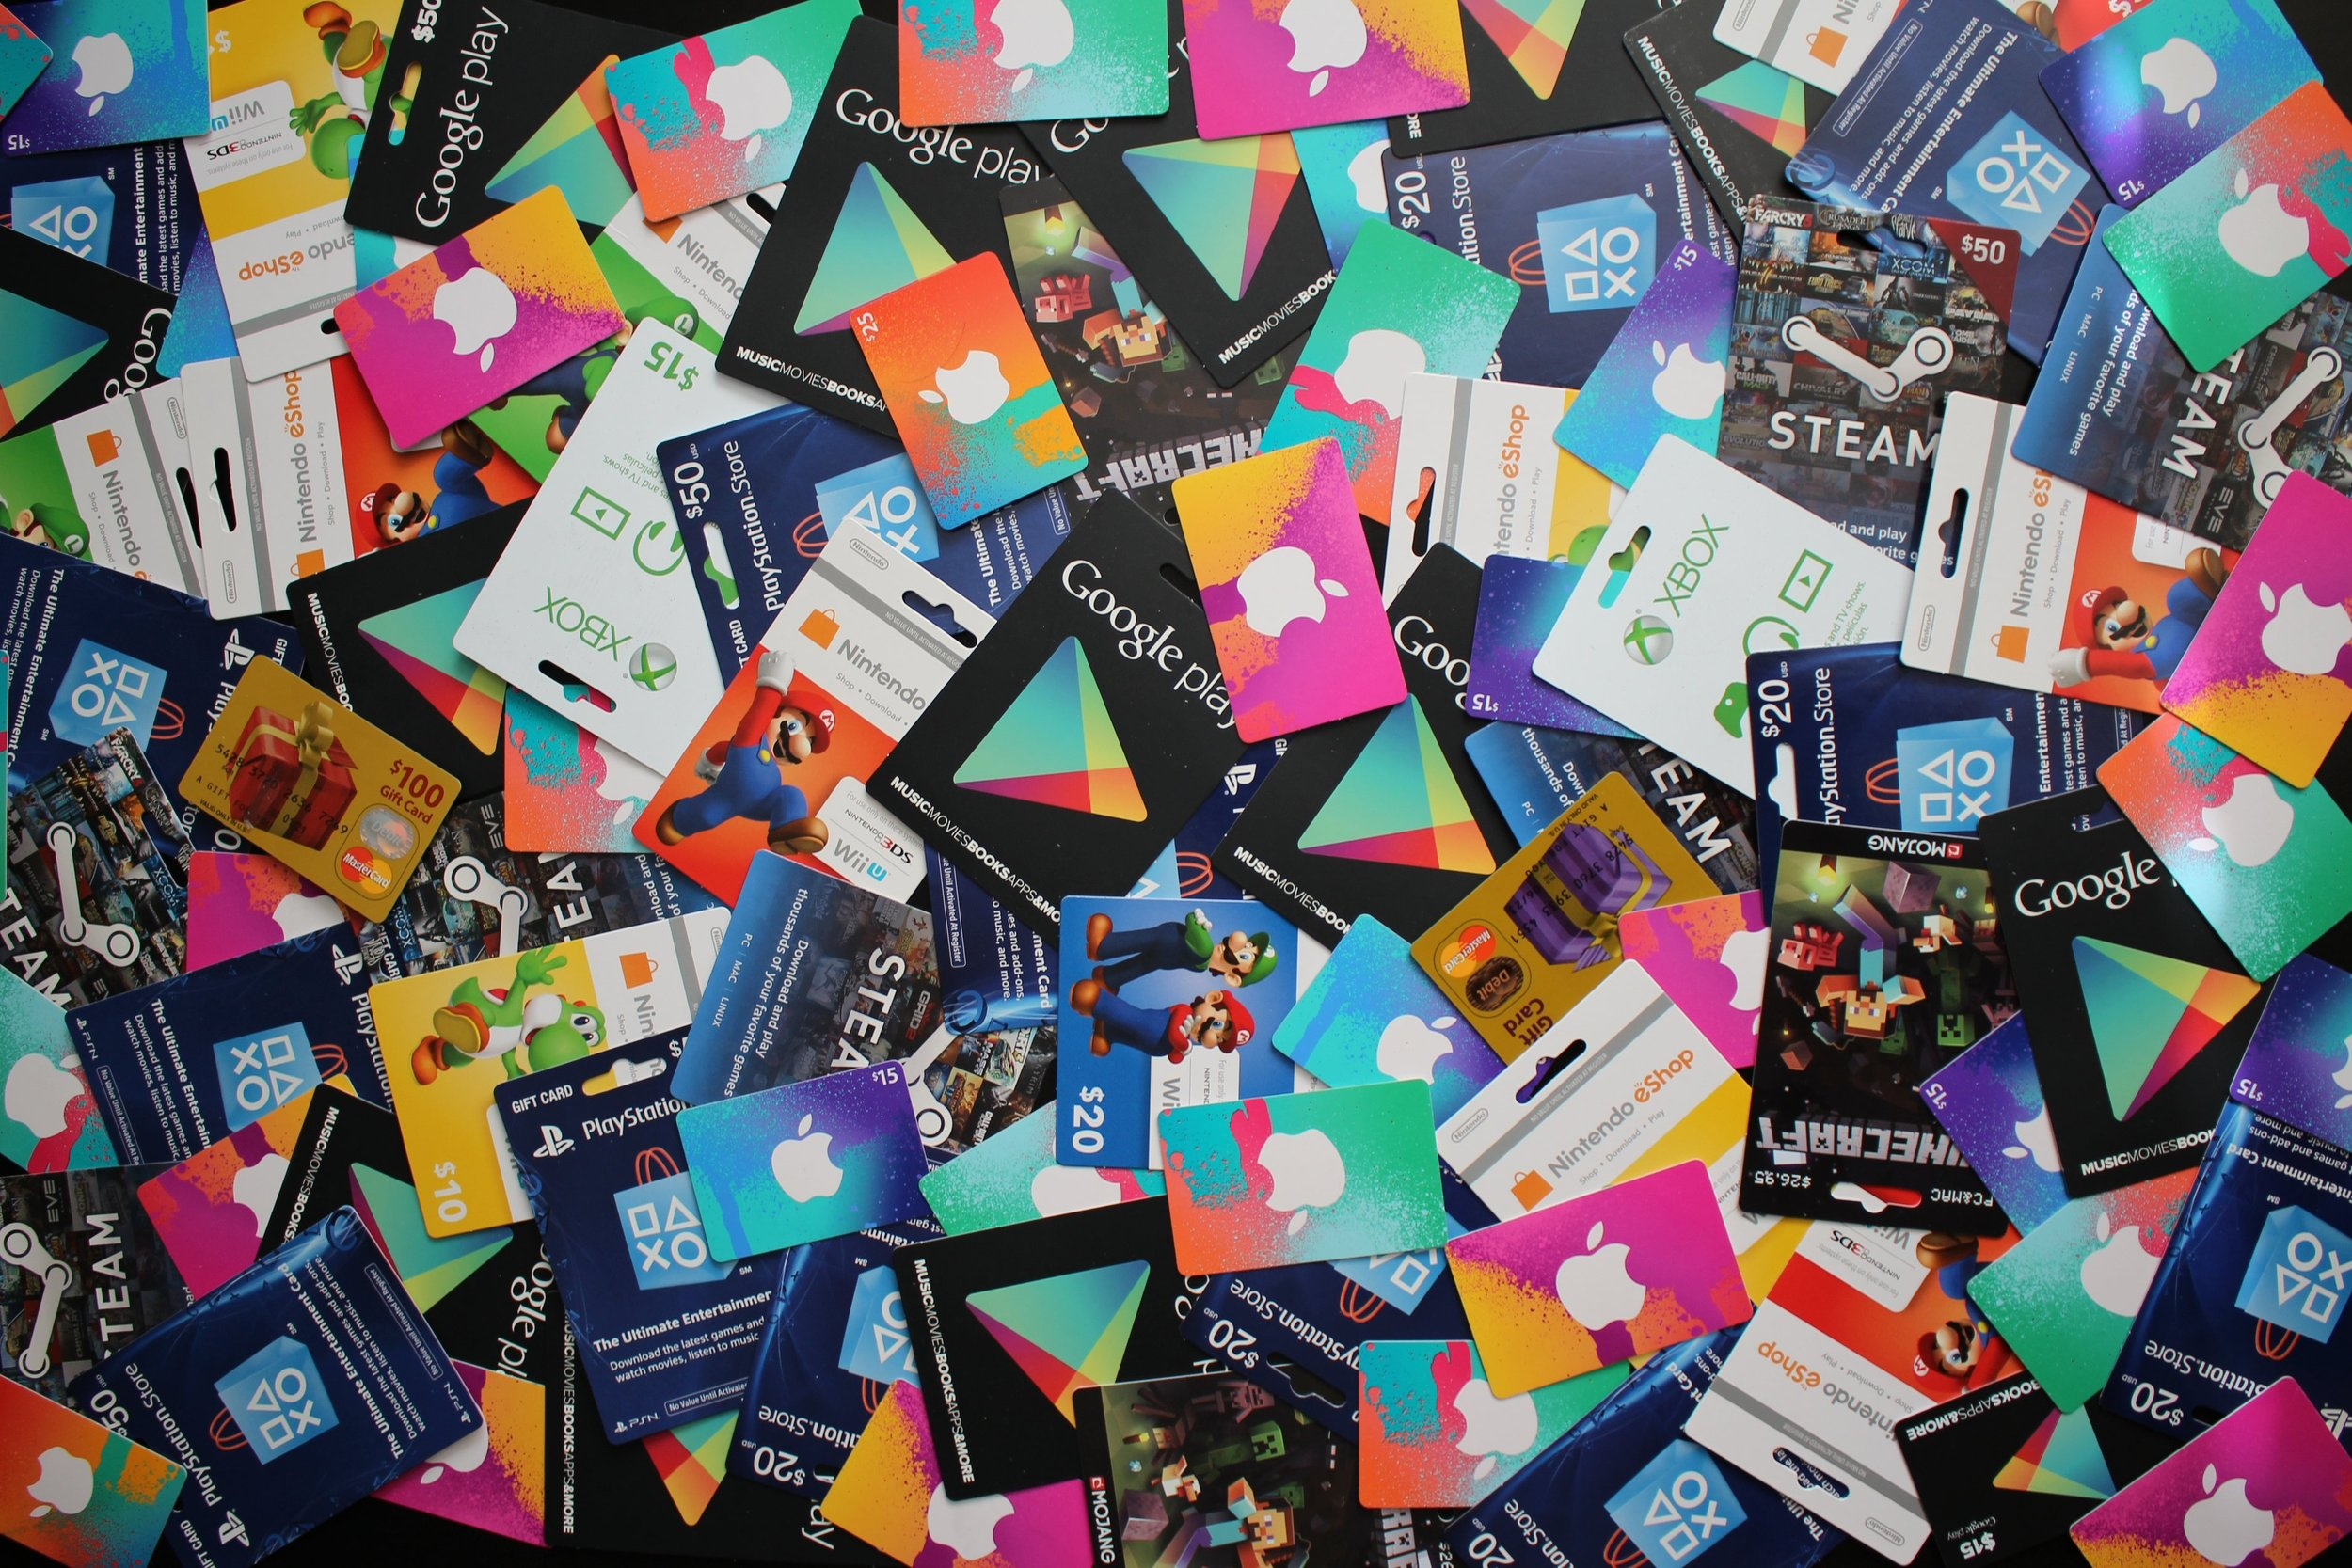 ALL OTHER GIFT CARDS - NEED SOMETHING OTHER THAN A U.S. ITUNES GIFT CARD? THAT'S OK!Please fill out the form below to let us know what you need. We carry and have access to most of the popular prepaid debit, media and gaming gift cards here in the U.S., as well as U.K. iTunes gift cards.